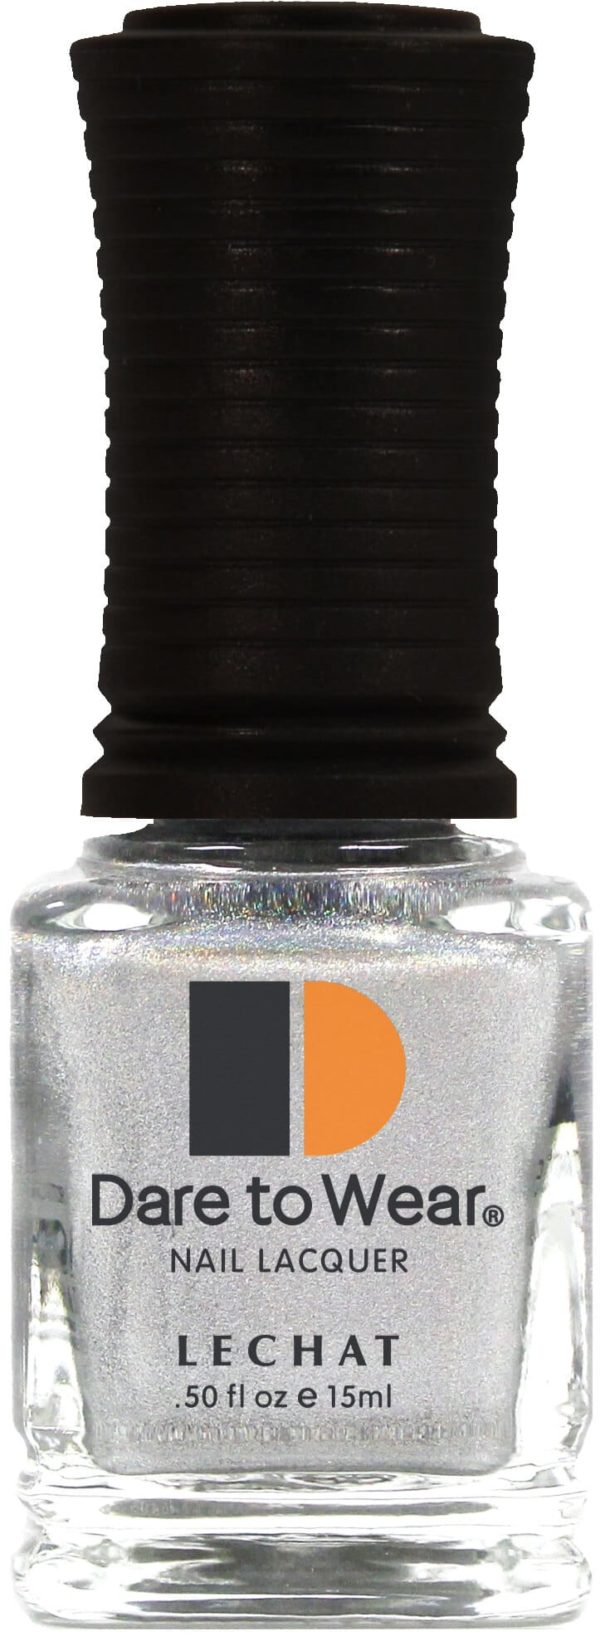 half fluid ounce bottle of silver Dare to Wear lacquer.